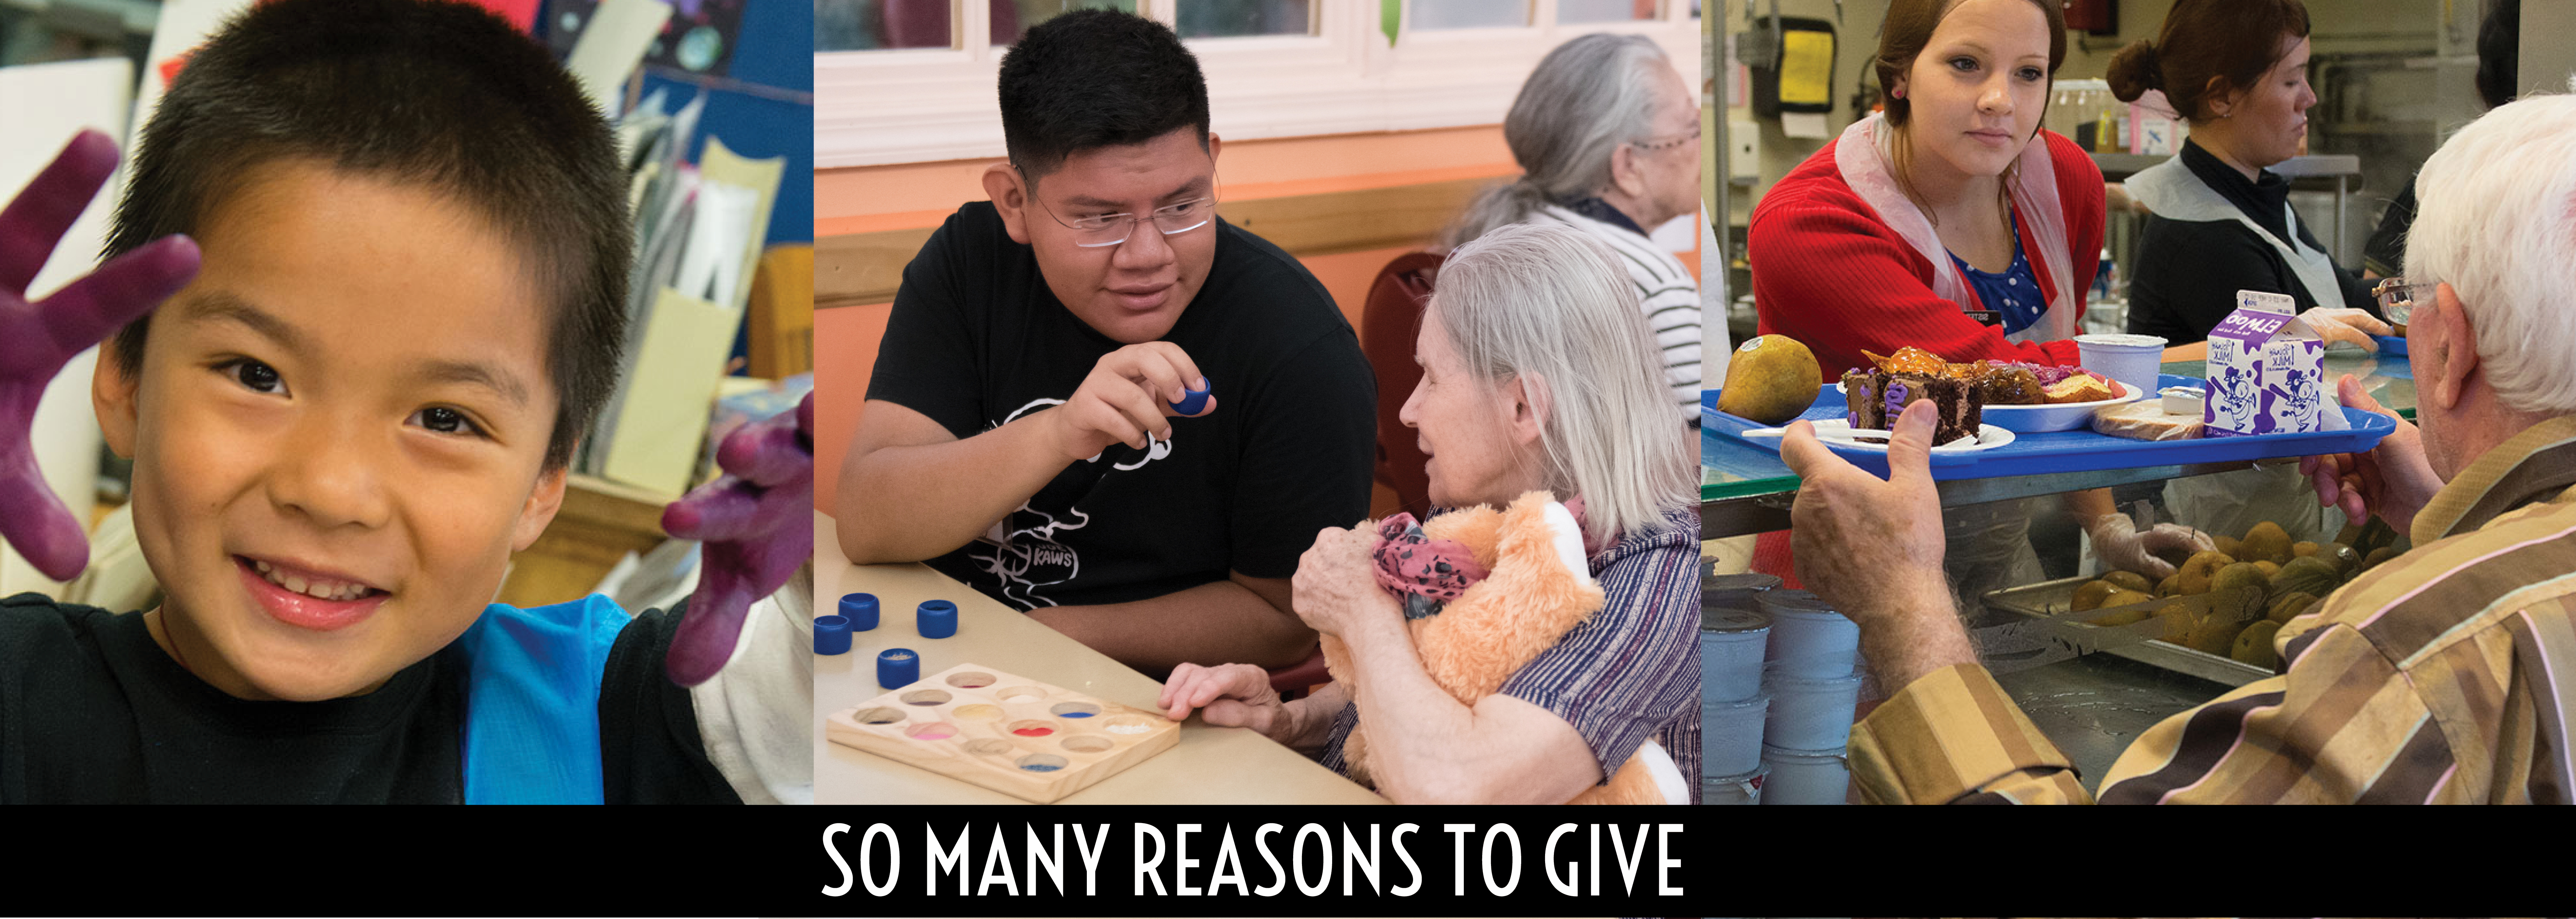 Please donate to Sunnyside Community Services.  There are so many reasons to give!